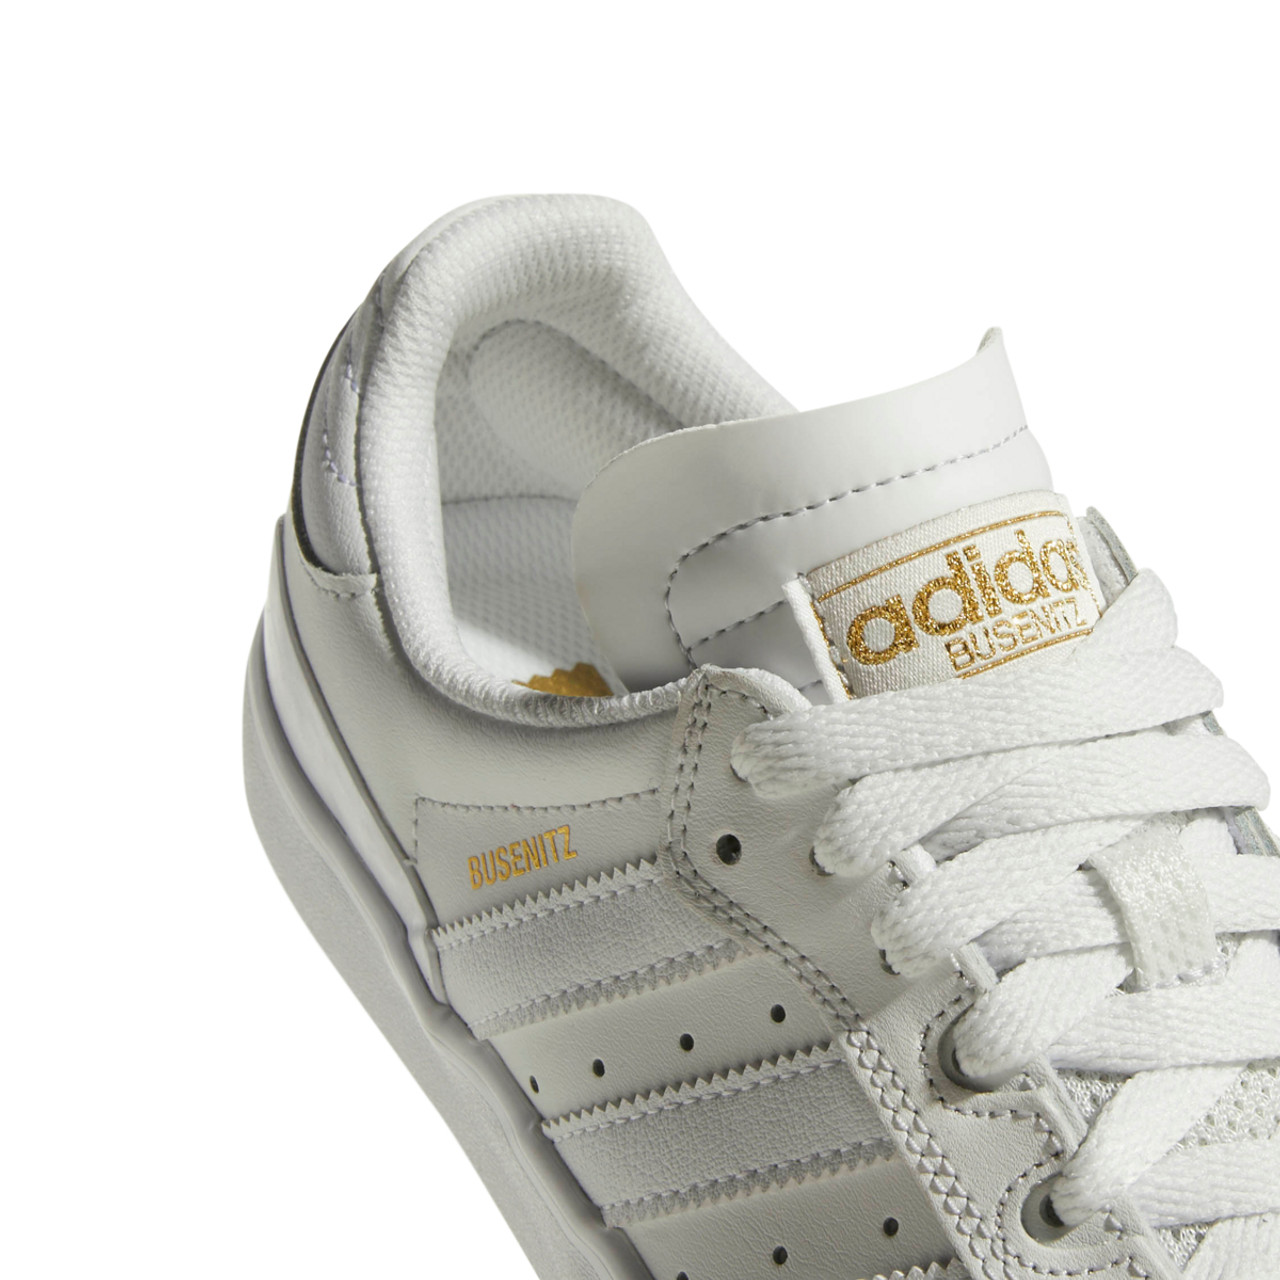 09d86dc962c Adidas Busenitz Vulc Rx Shoes White Leather White Suede ...